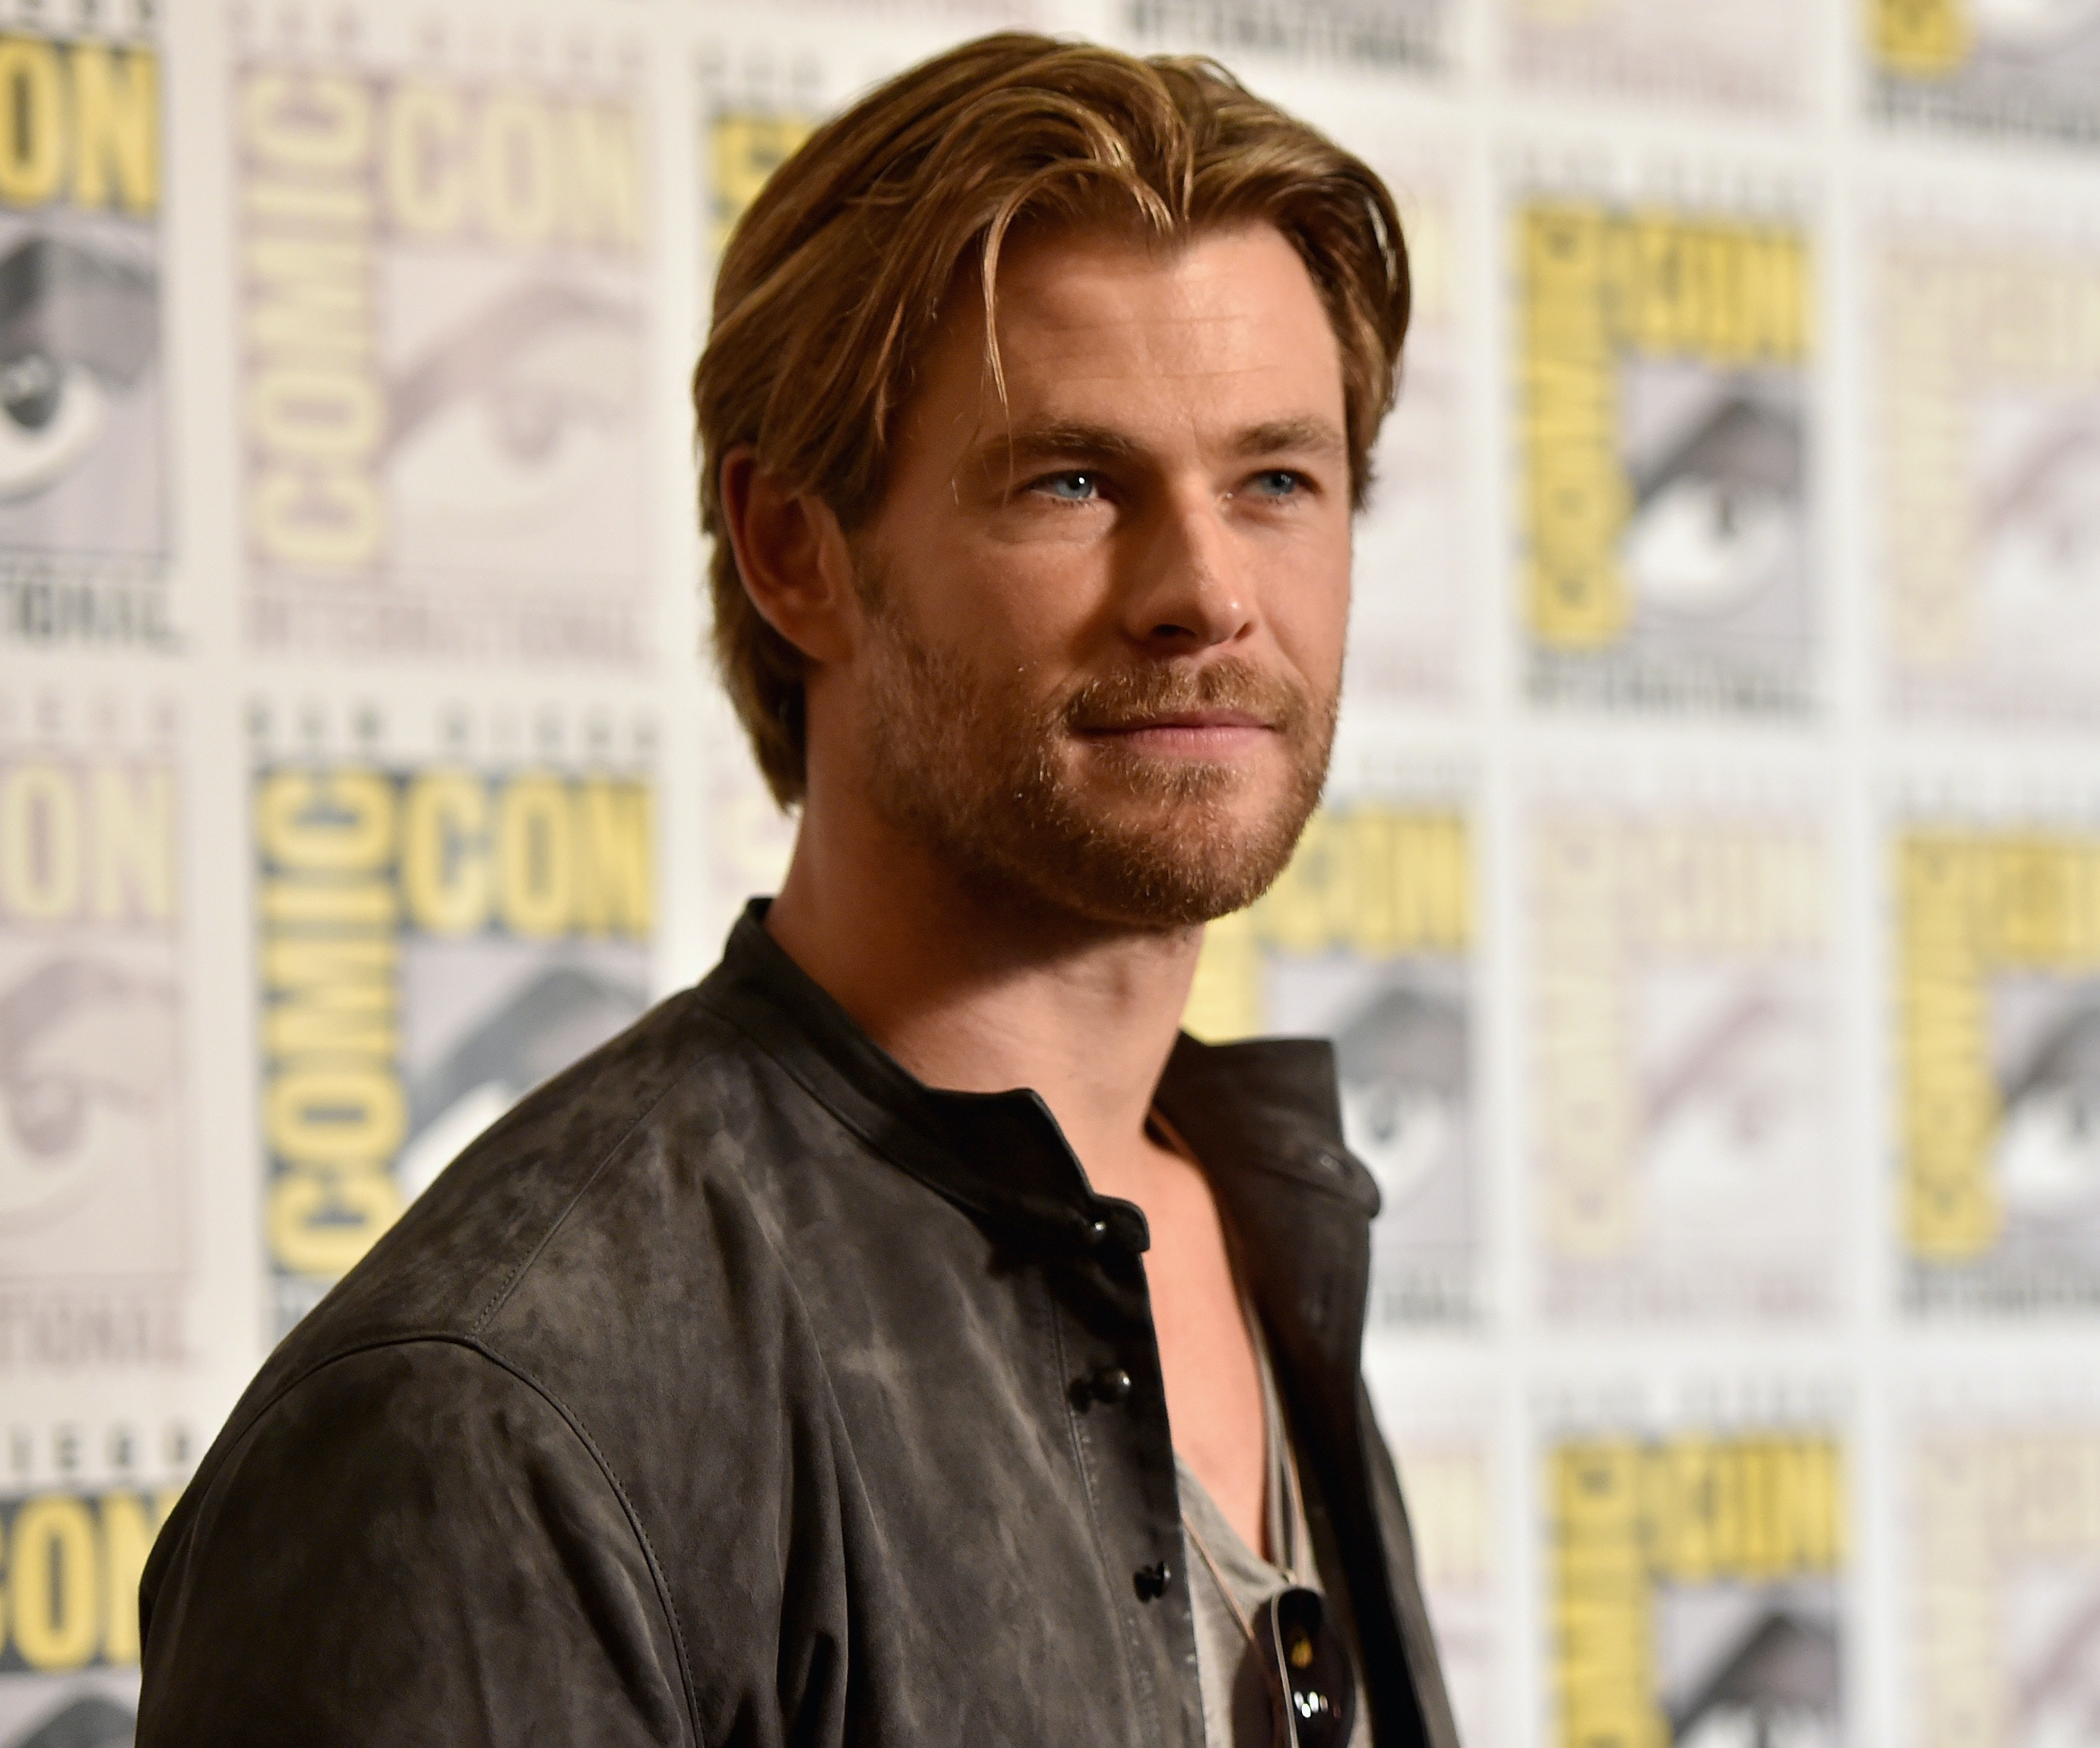 who is the actor thor dating